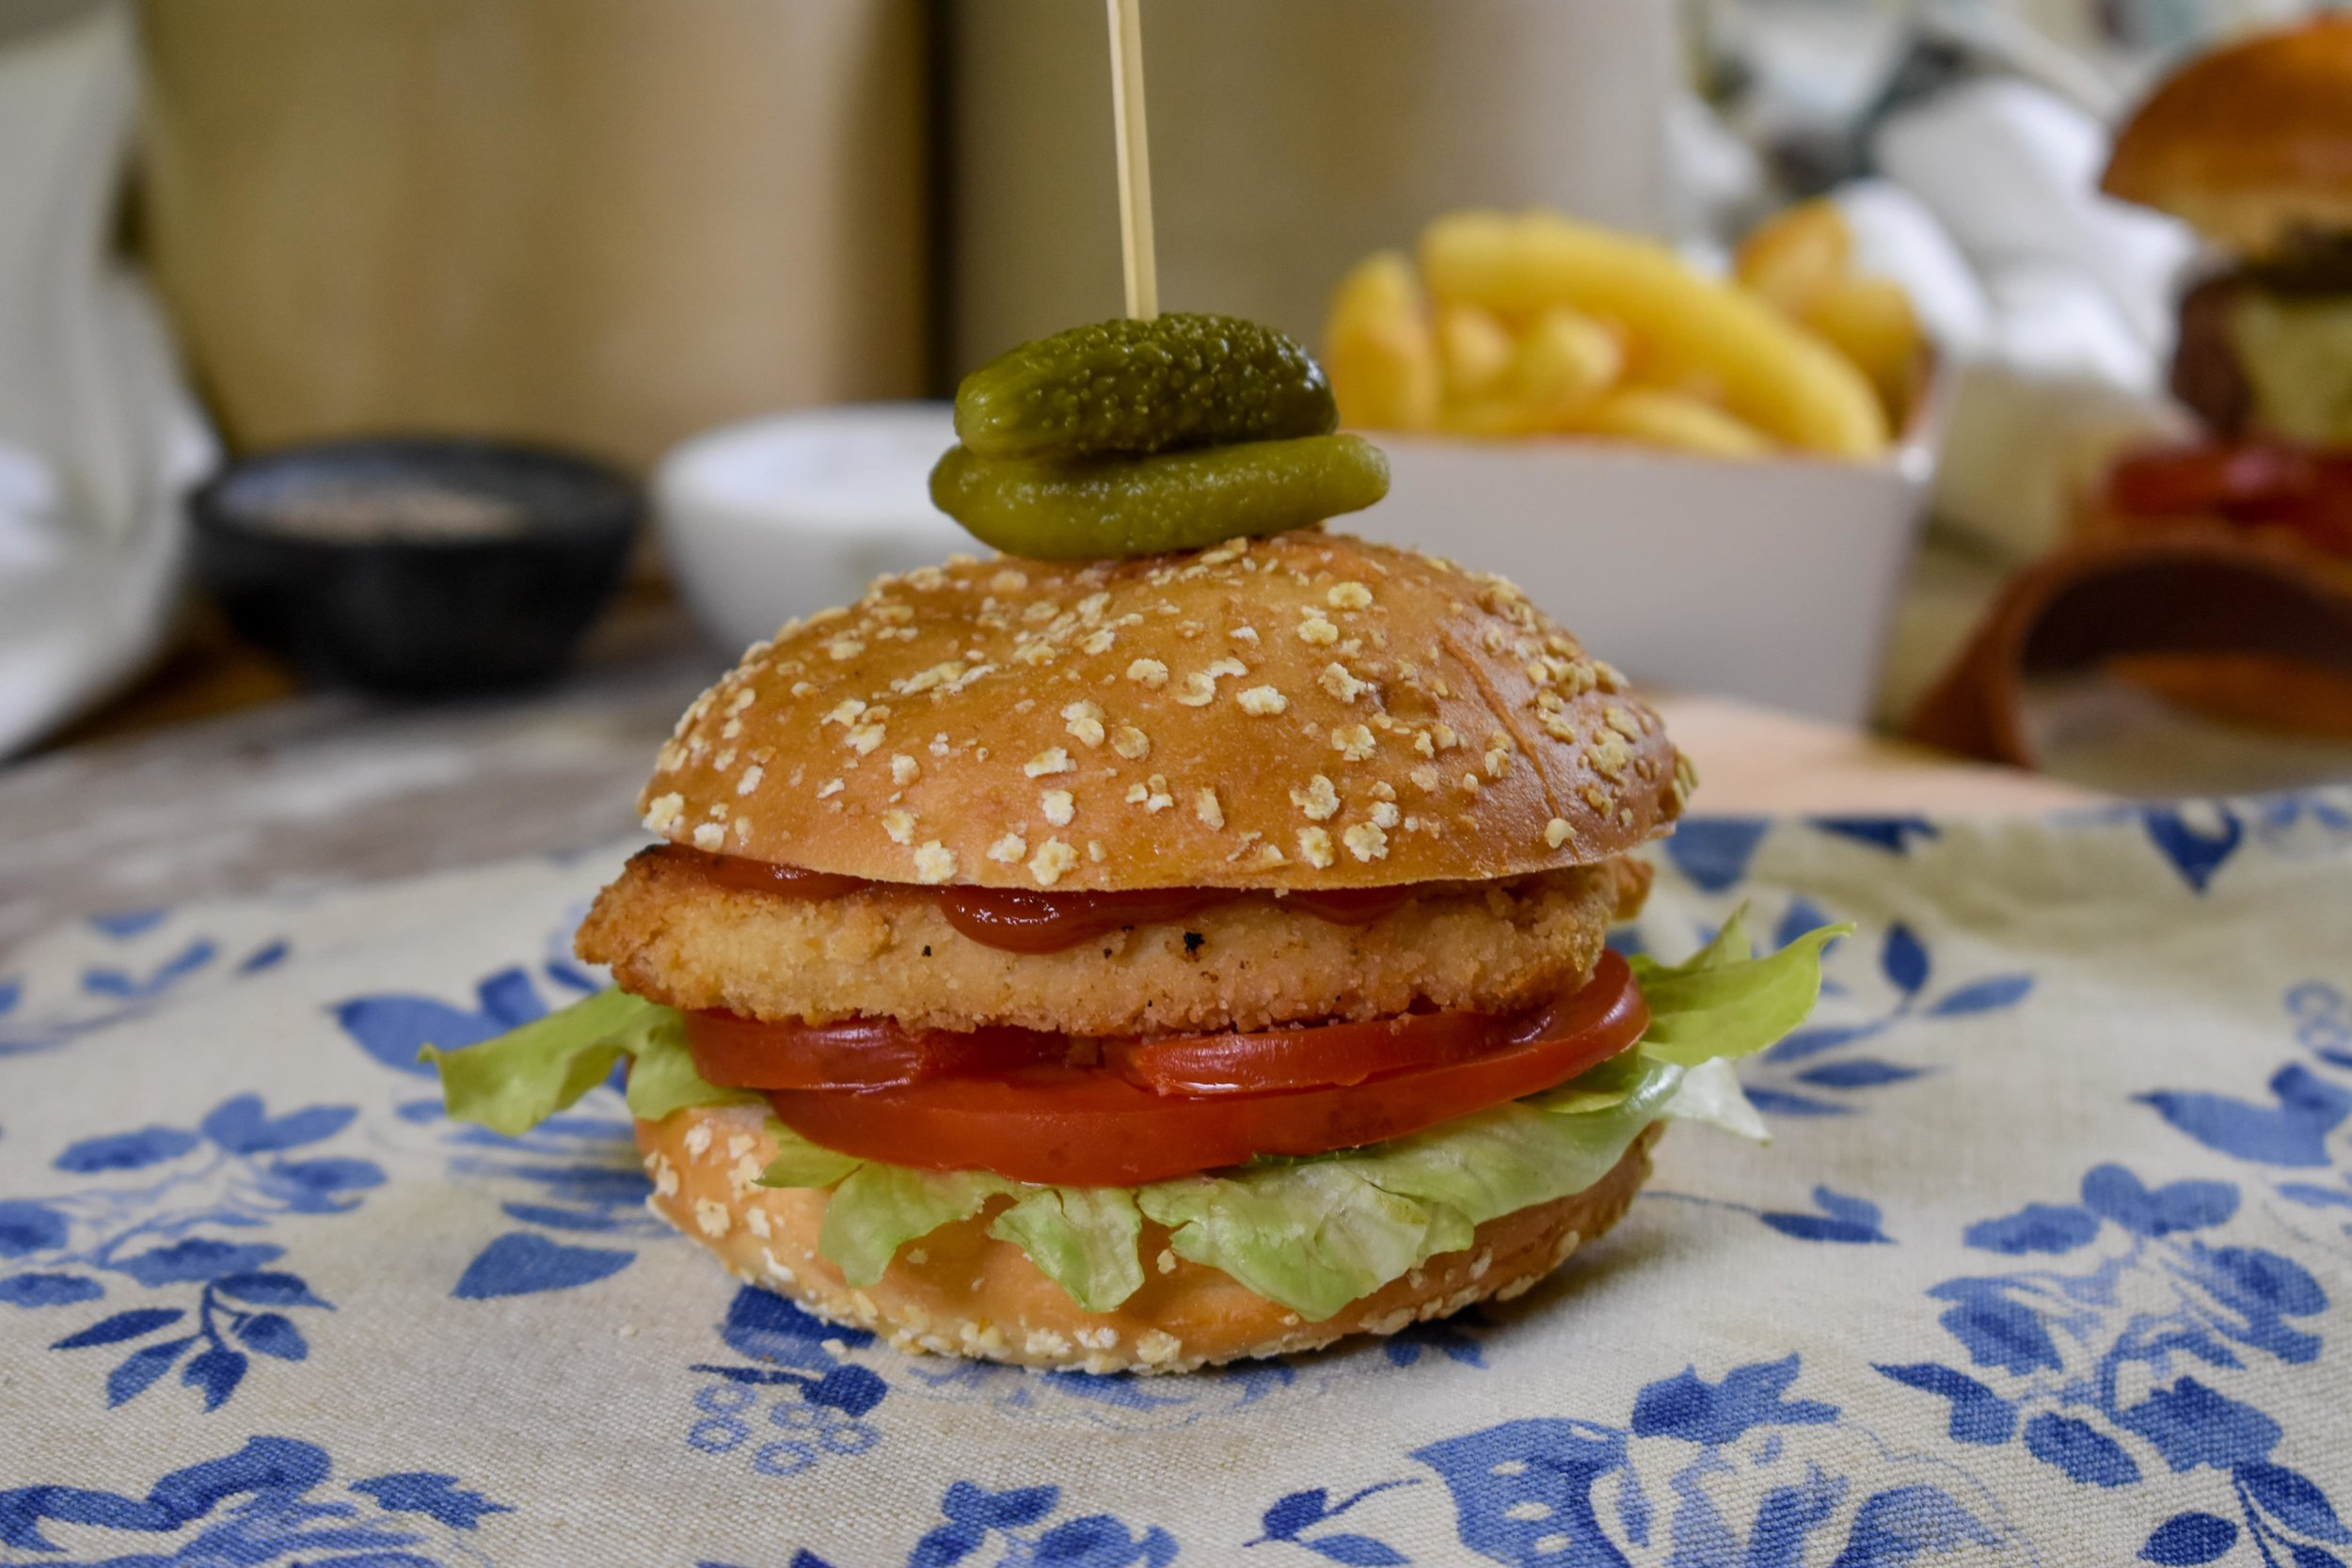 Gluten free bun filled with lettuce, tomato, chicken goujons and topped with ketchup